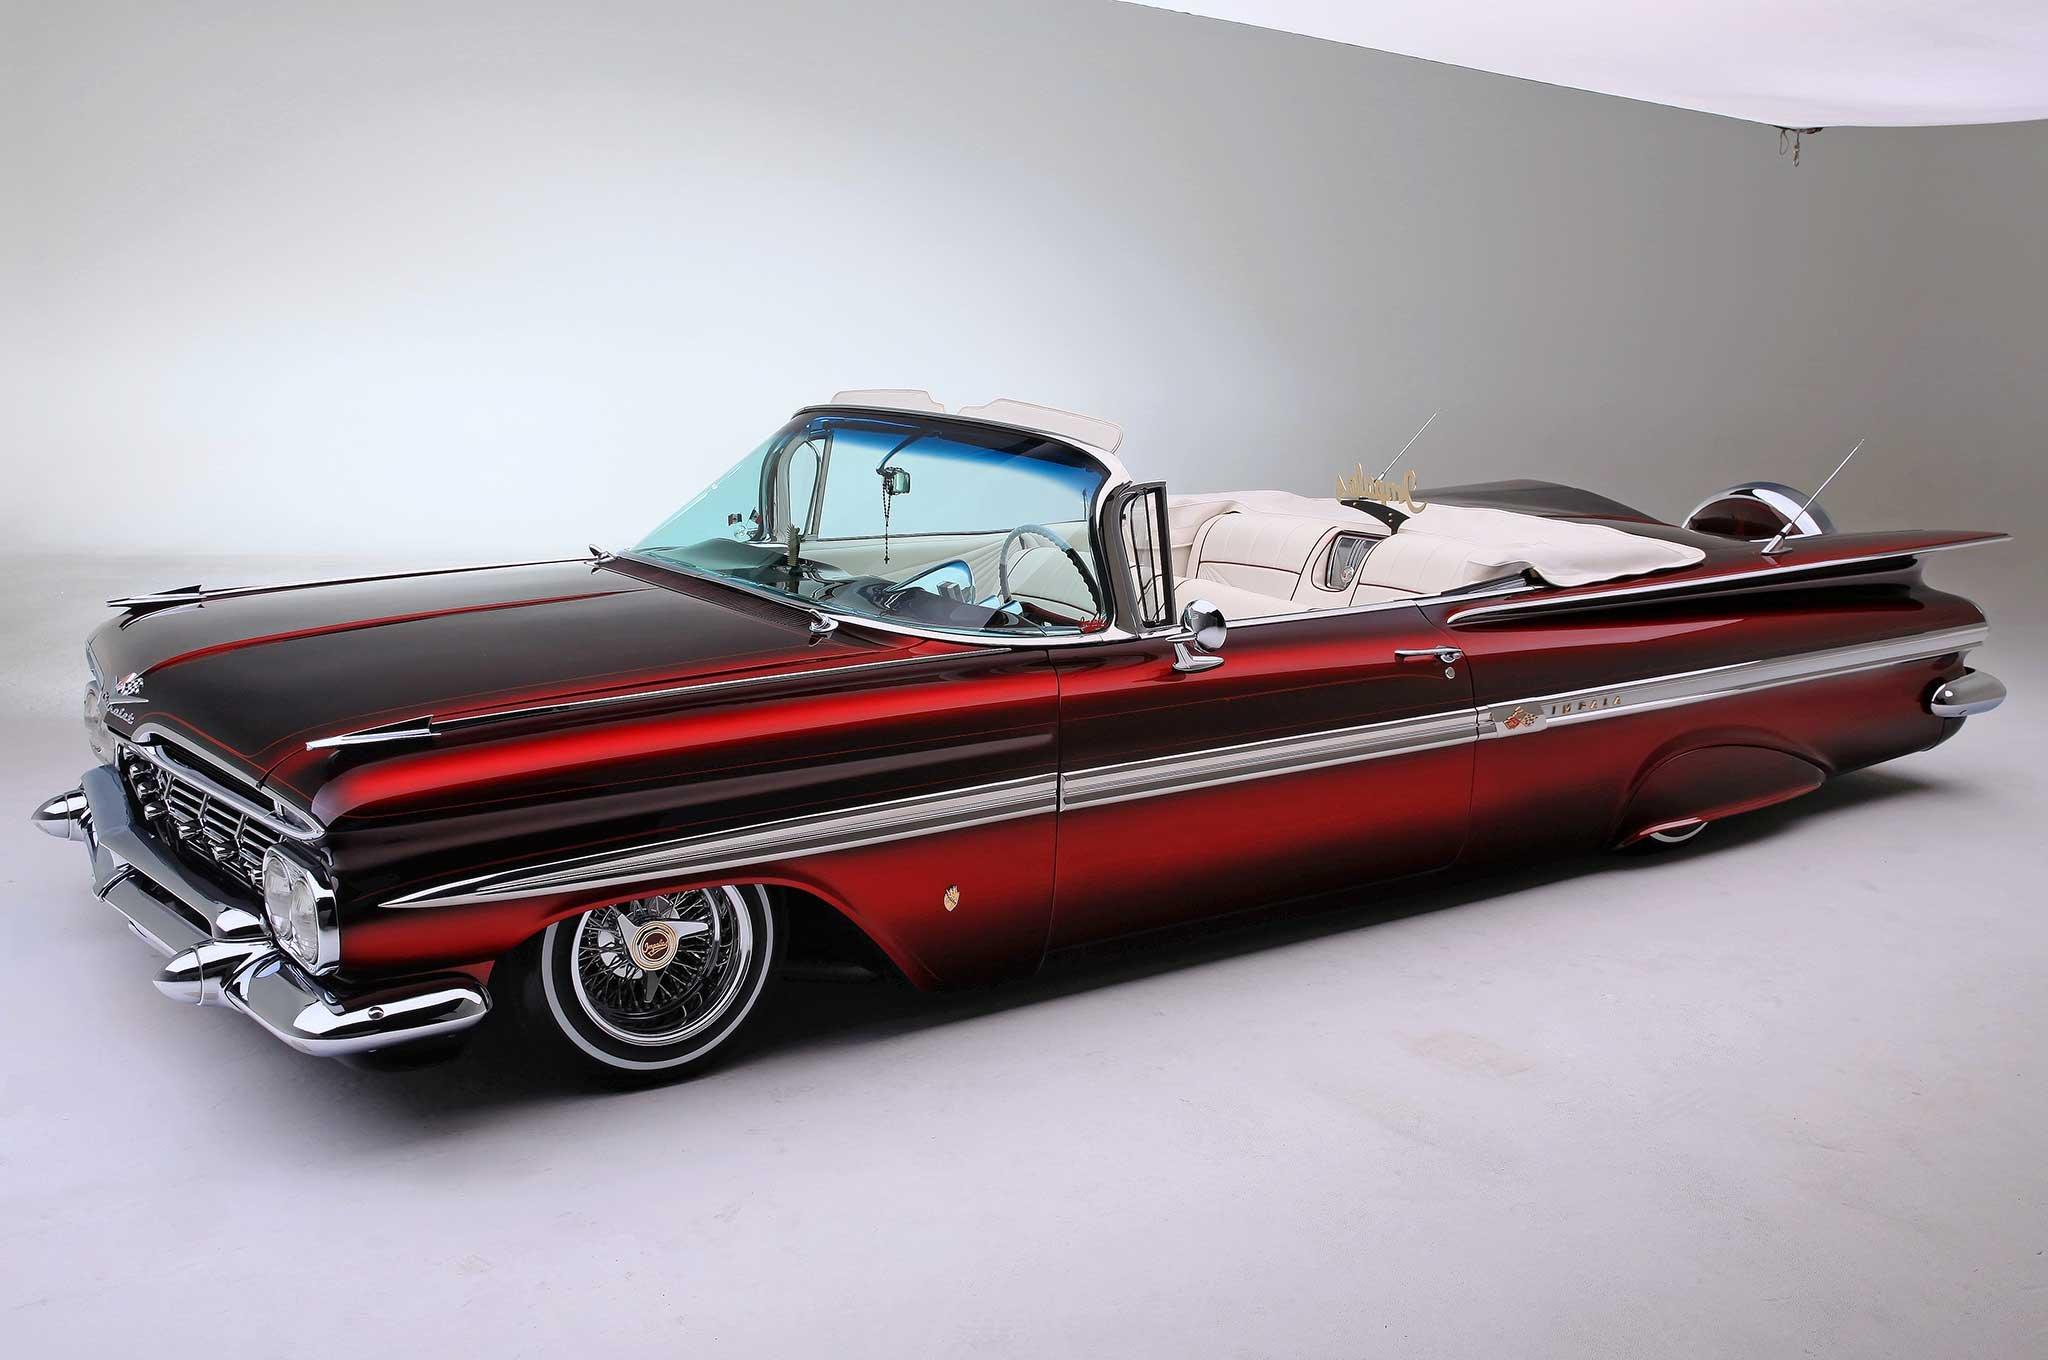 1959 chevrolet impala for sale hemmings motor news autos for Newspaper wallpaper for sale